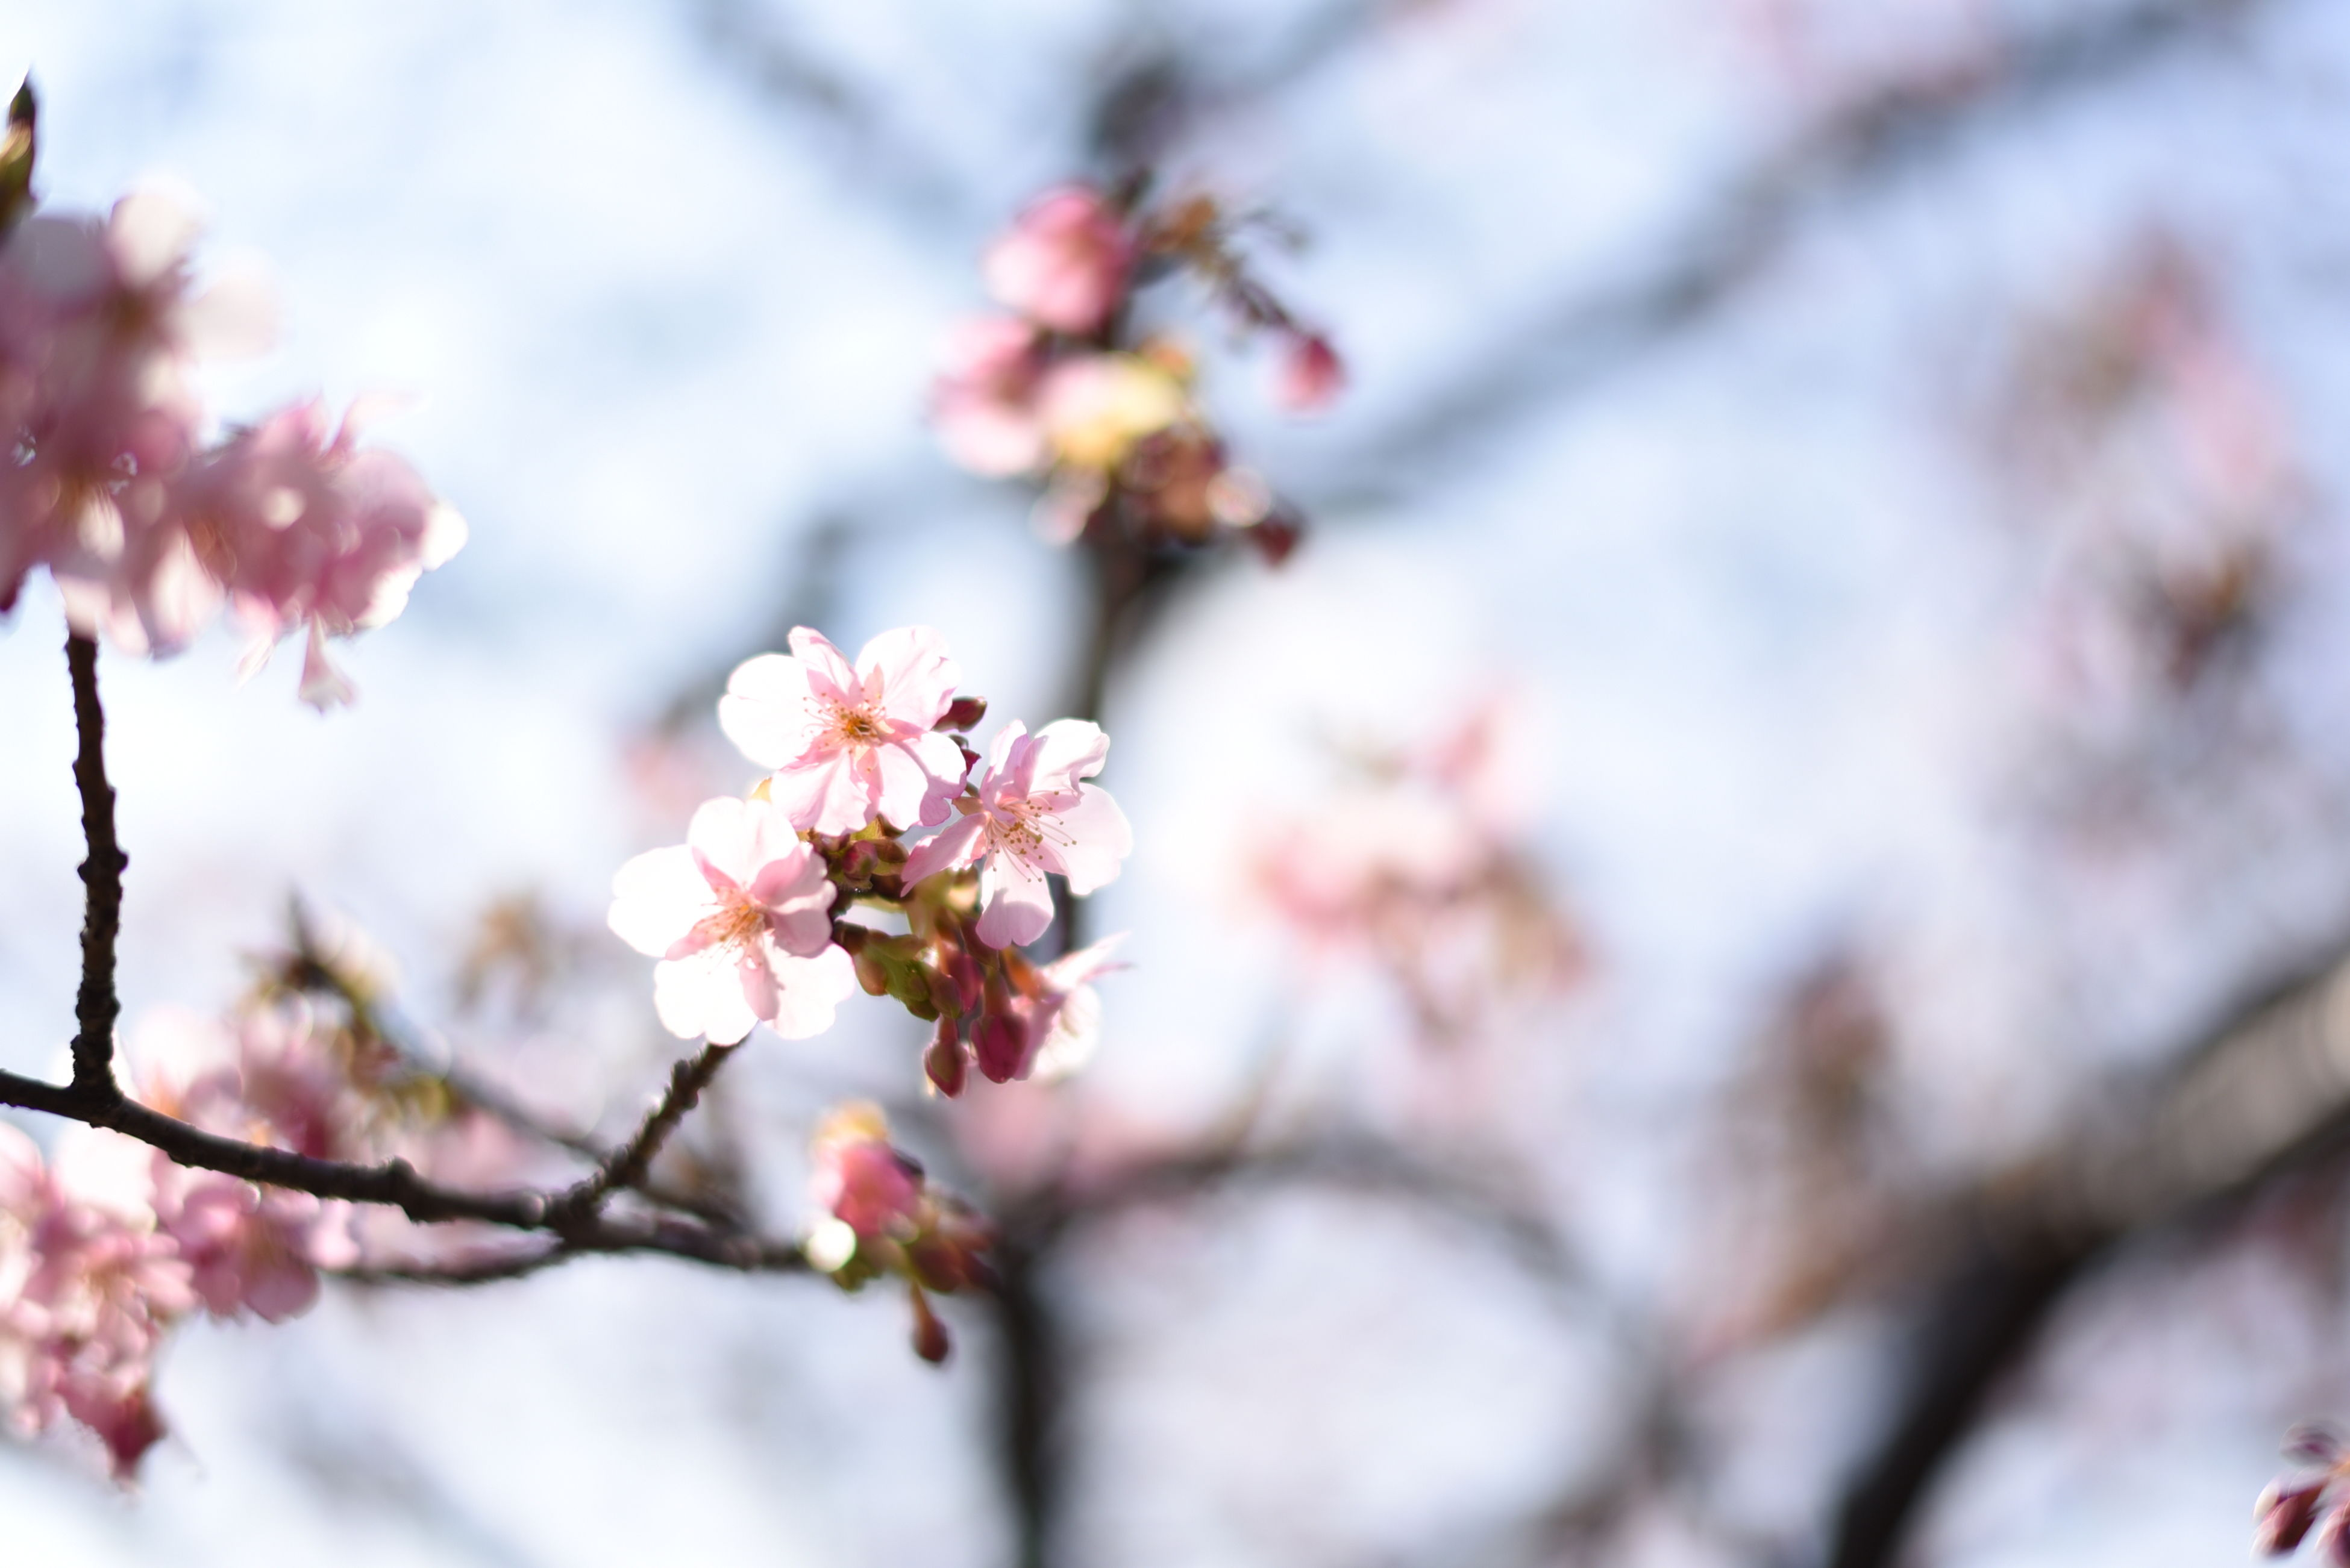 flower, branch, freshness, tree, cherry blossom, growth, fragility, cherry tree, beauty in nature, blossom, focus on foreground, nature, twig, pink color, close-up, fruit tree, springtime, low angle view, selective focus, in bloom